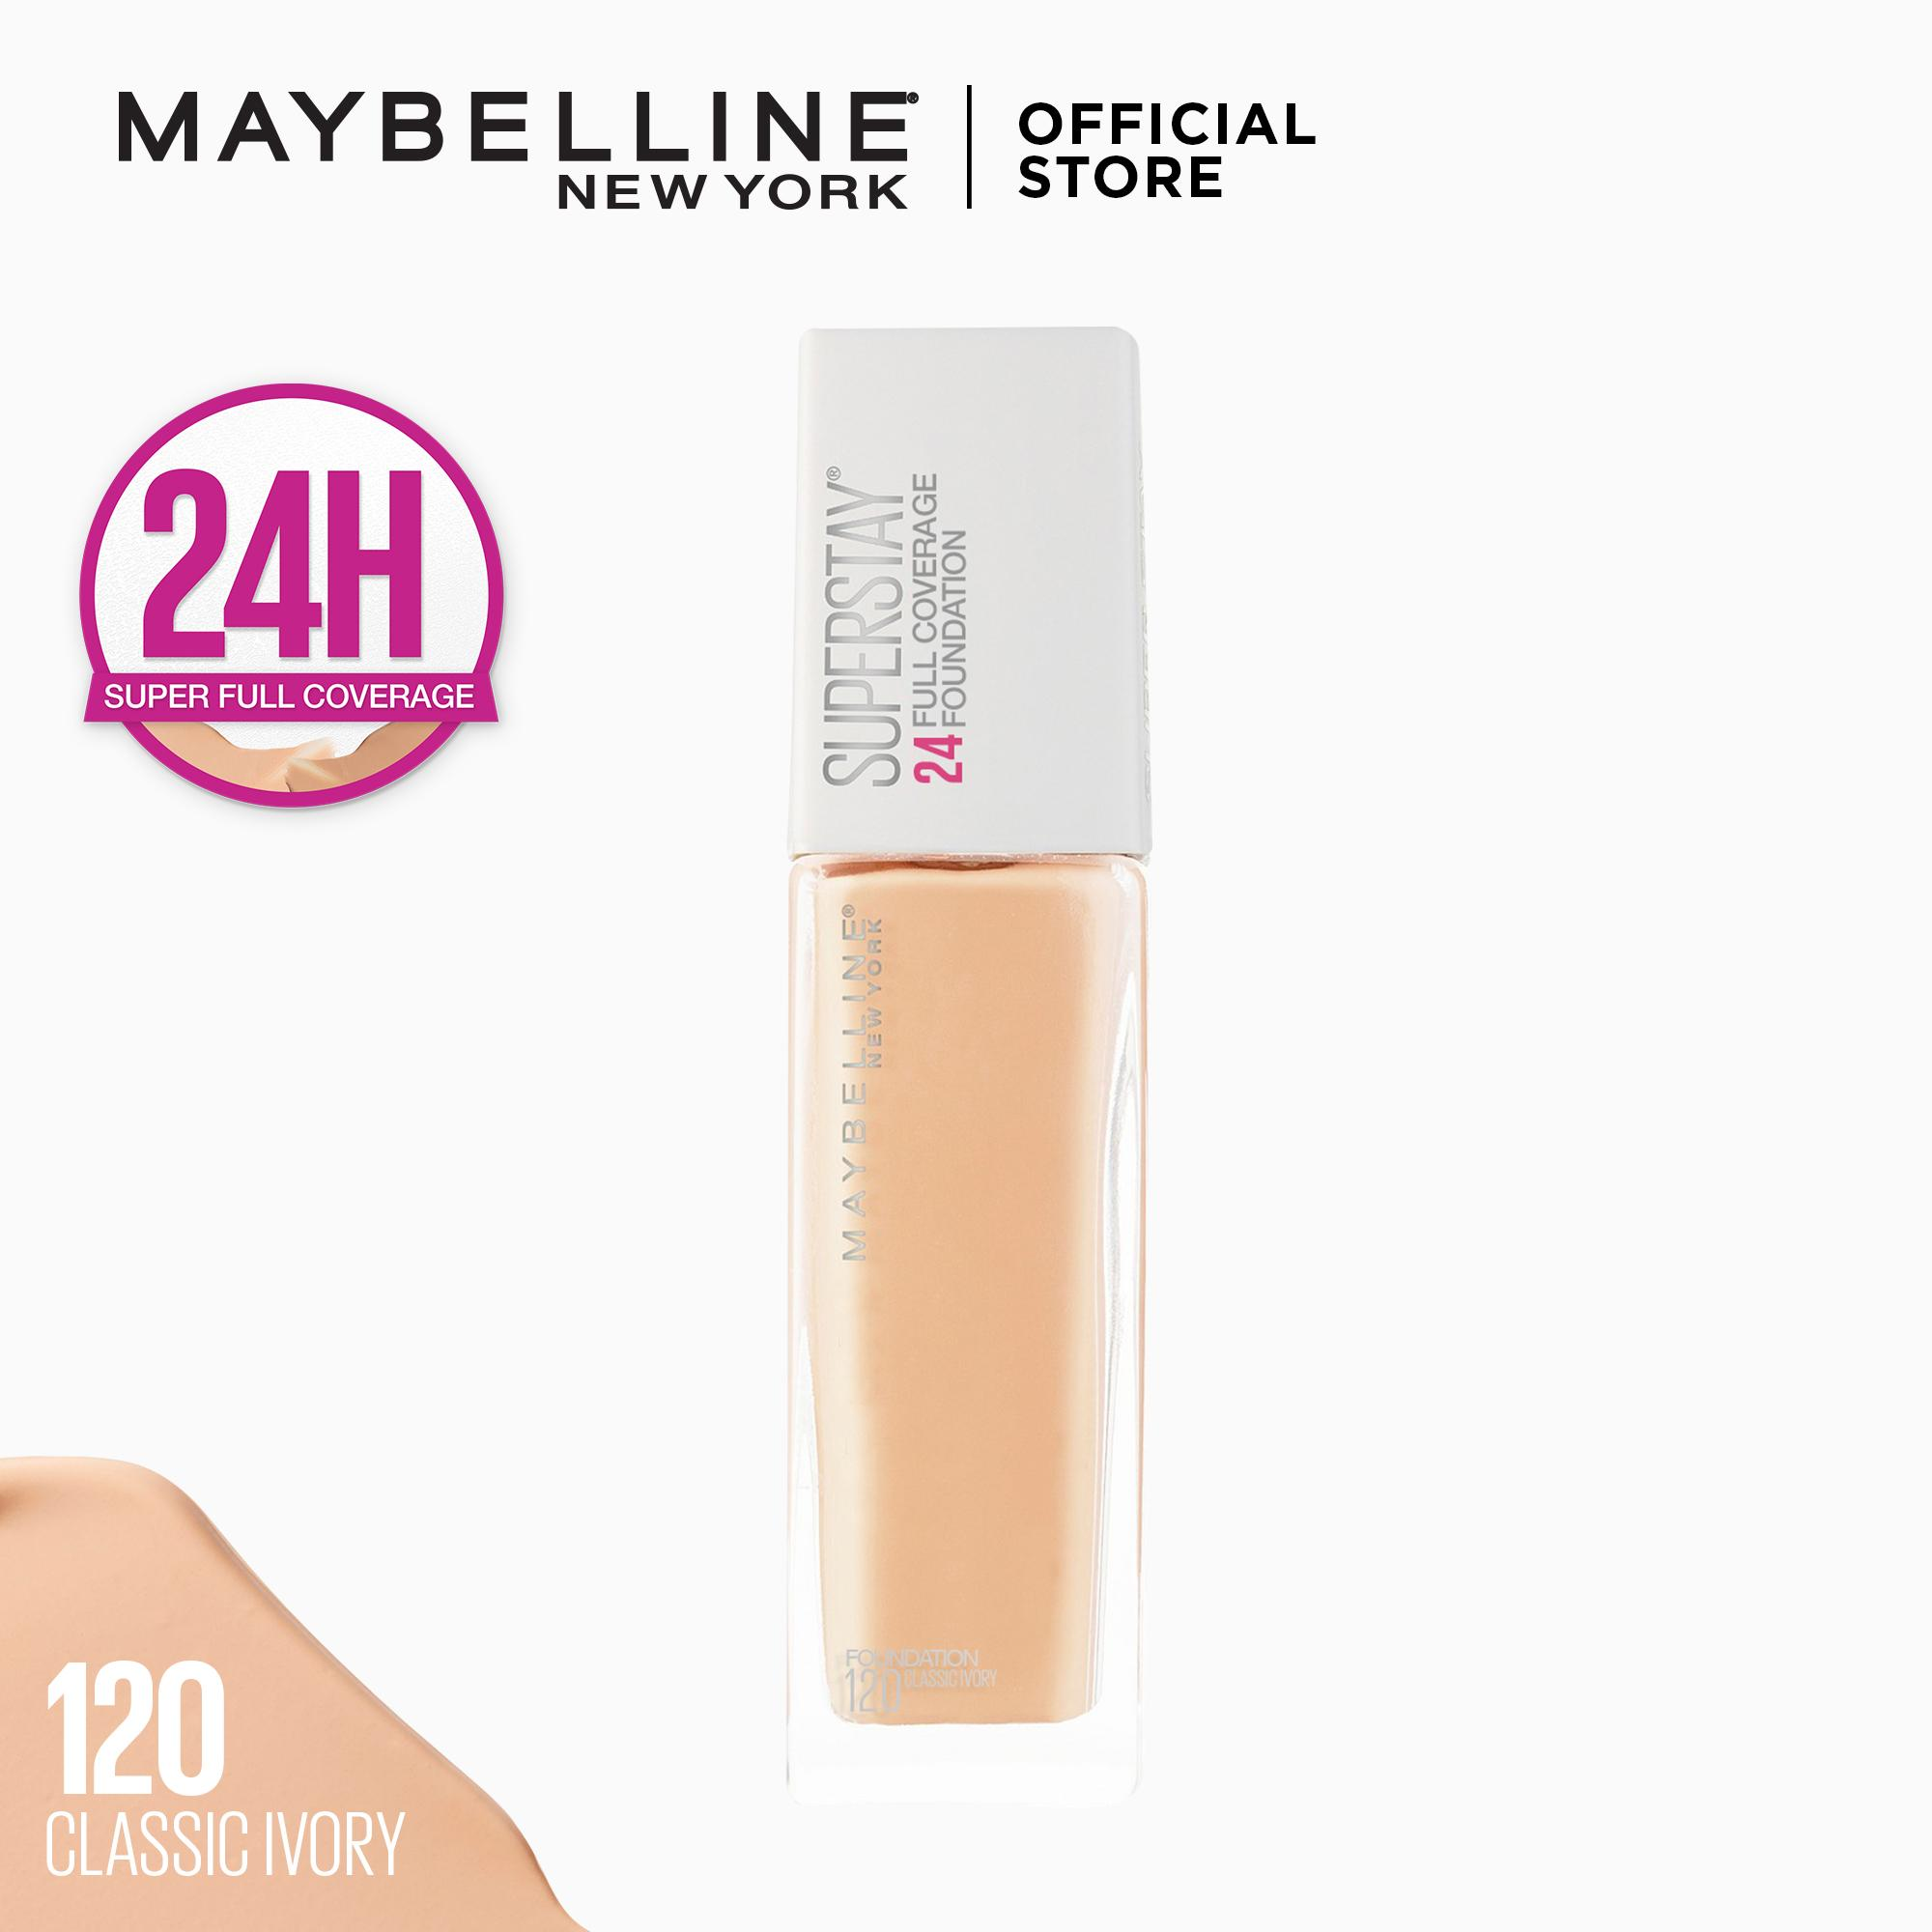 Superstay 24h Full Coverage Foundation By Maybelline By Maybelline.